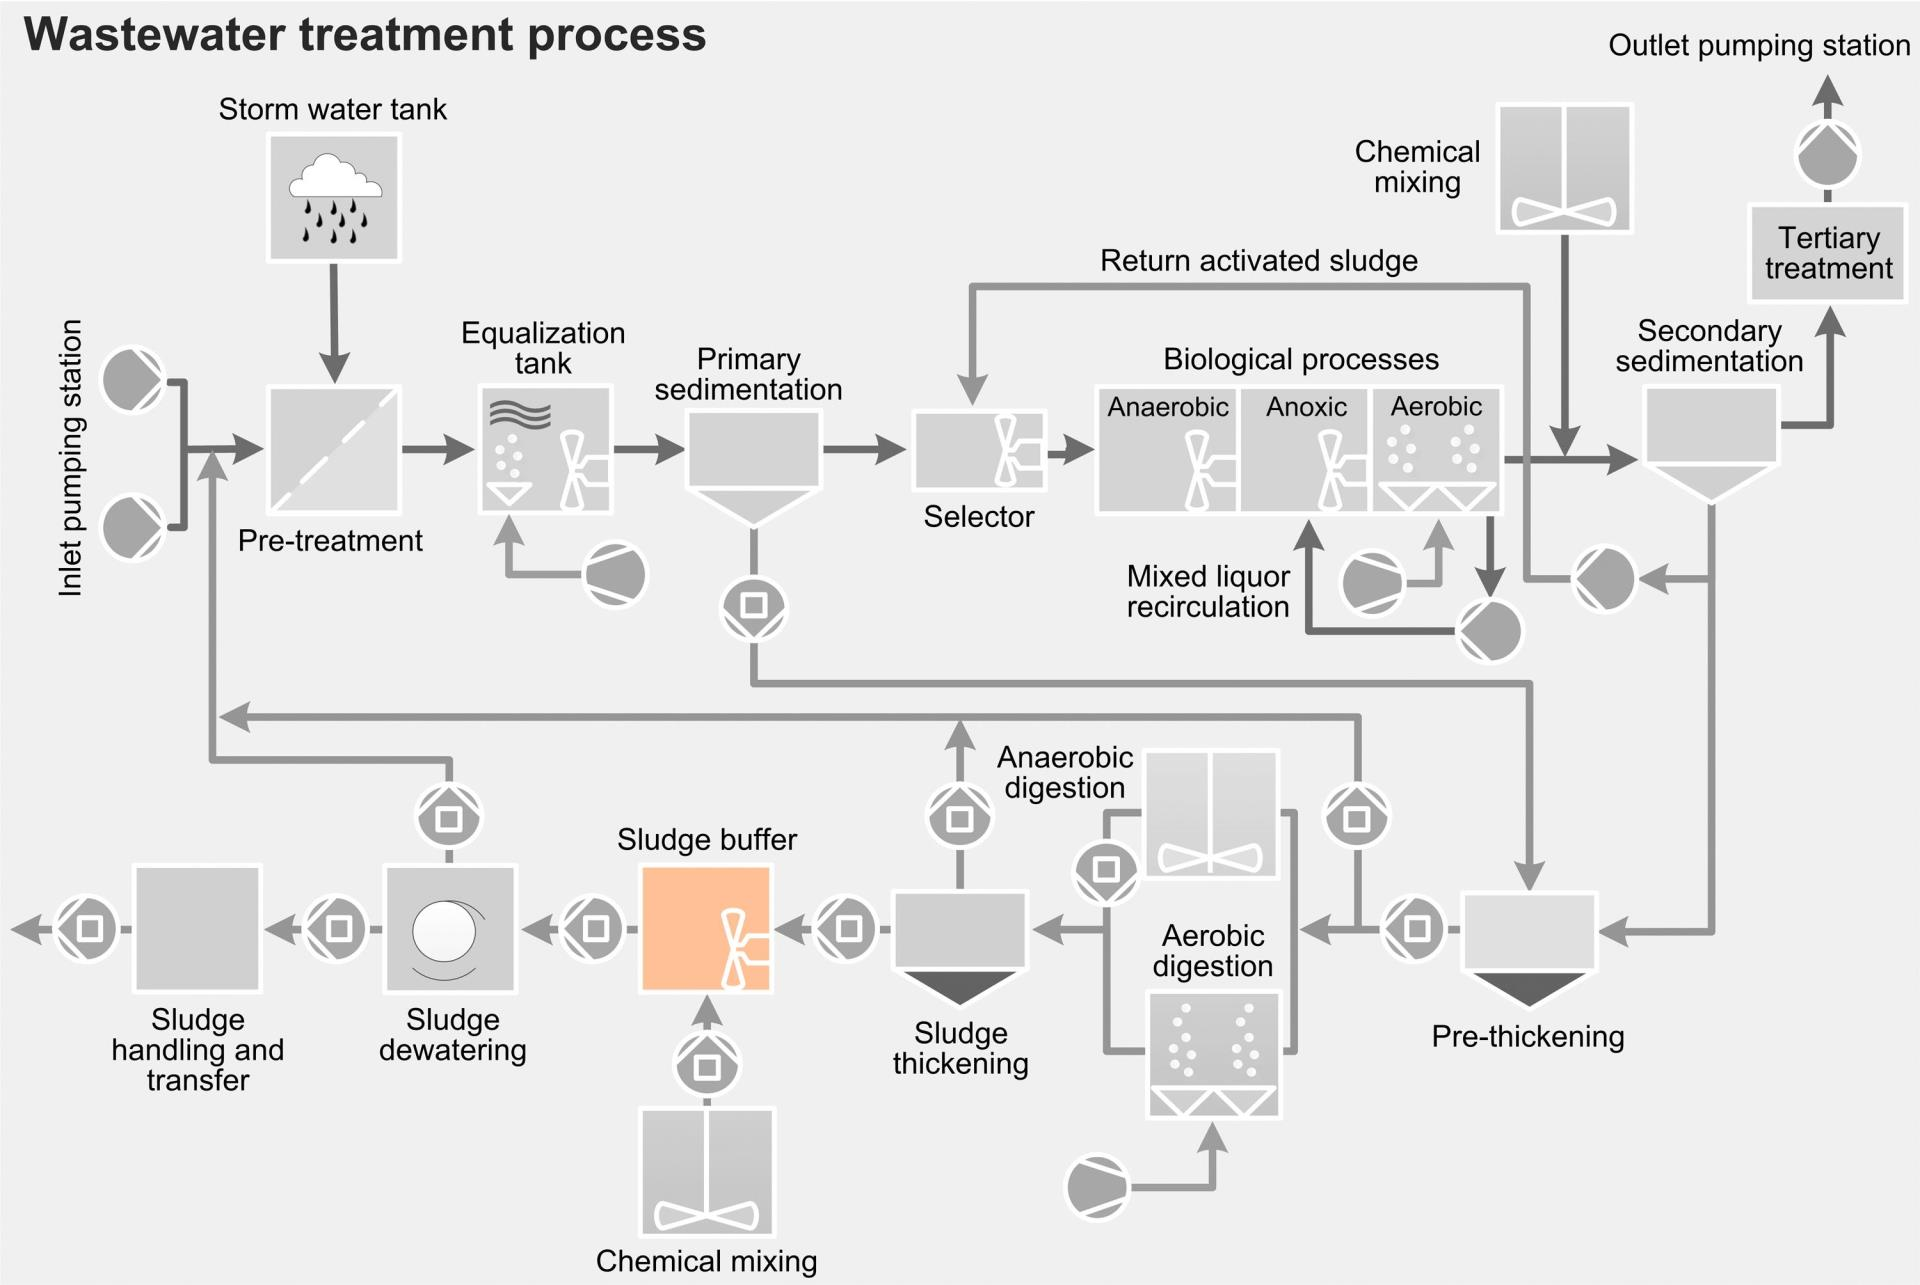 Wastewater treatment process - sludge buffer tank